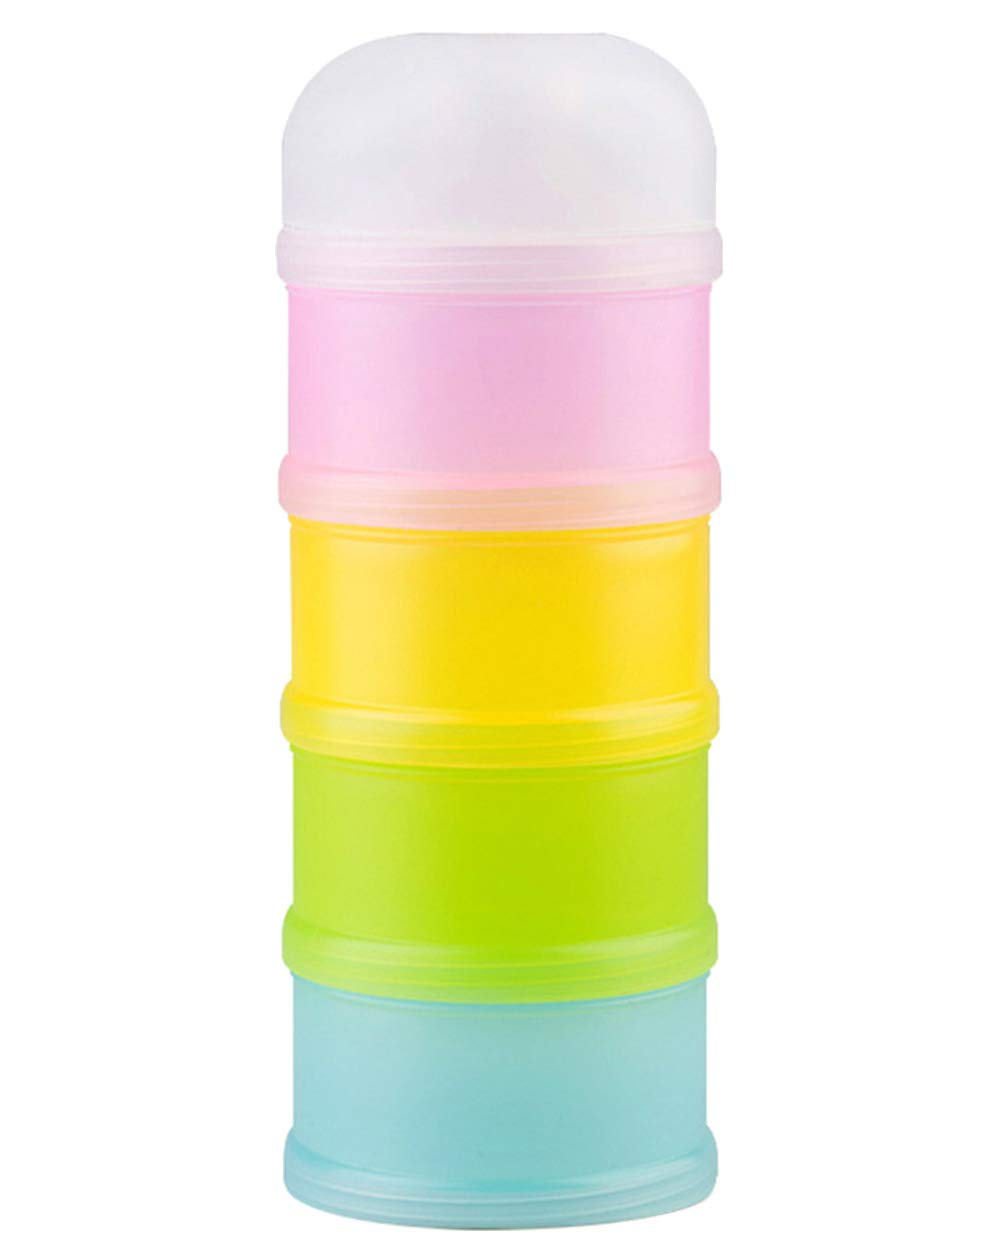 Kidsmile Babies Non-Spill Milk Dispenser, Twist Locks, Stackable Dispensers, Snack Storage Containers. (4 Tier Packaged Intelligent Storage System, 4 Different Color Packs)